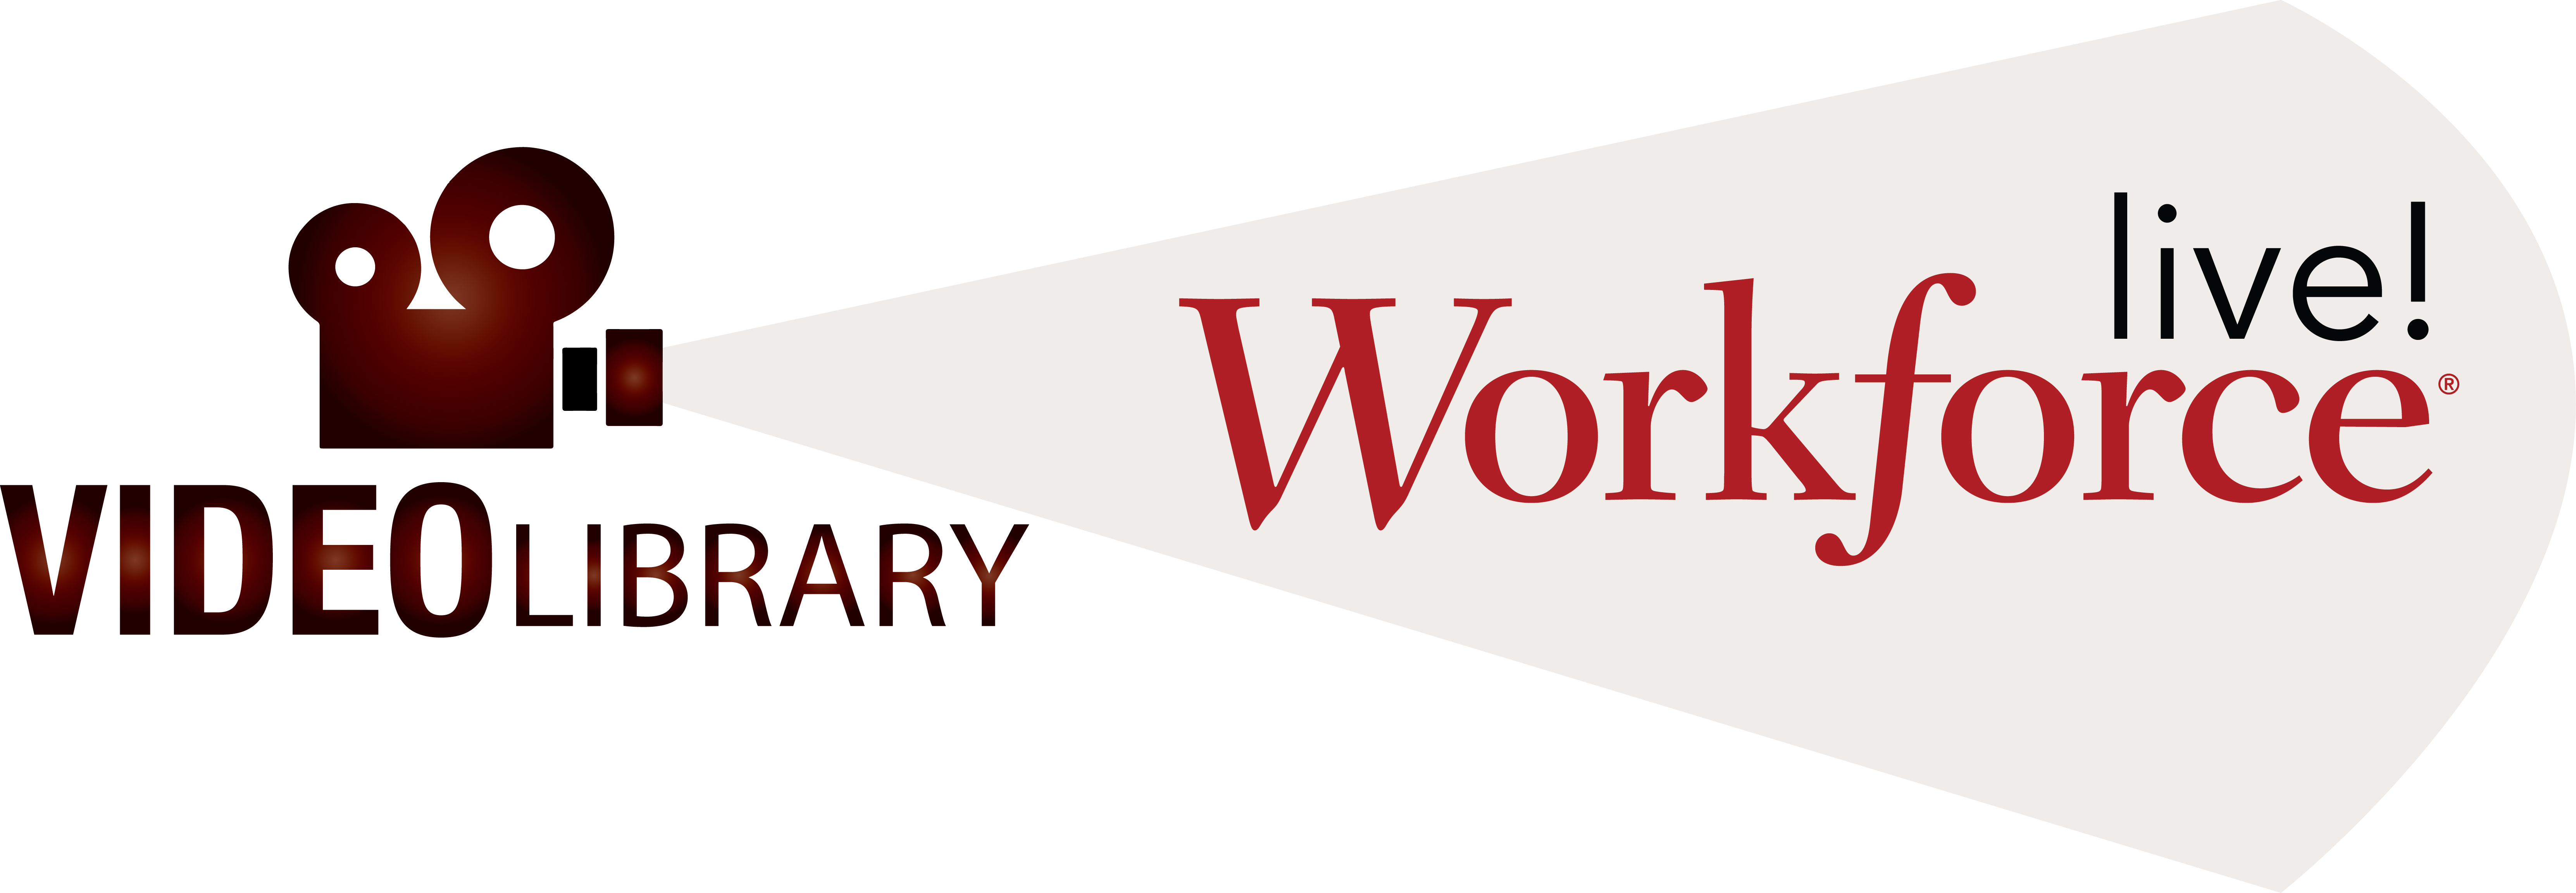 Workforce Live Video Library logo